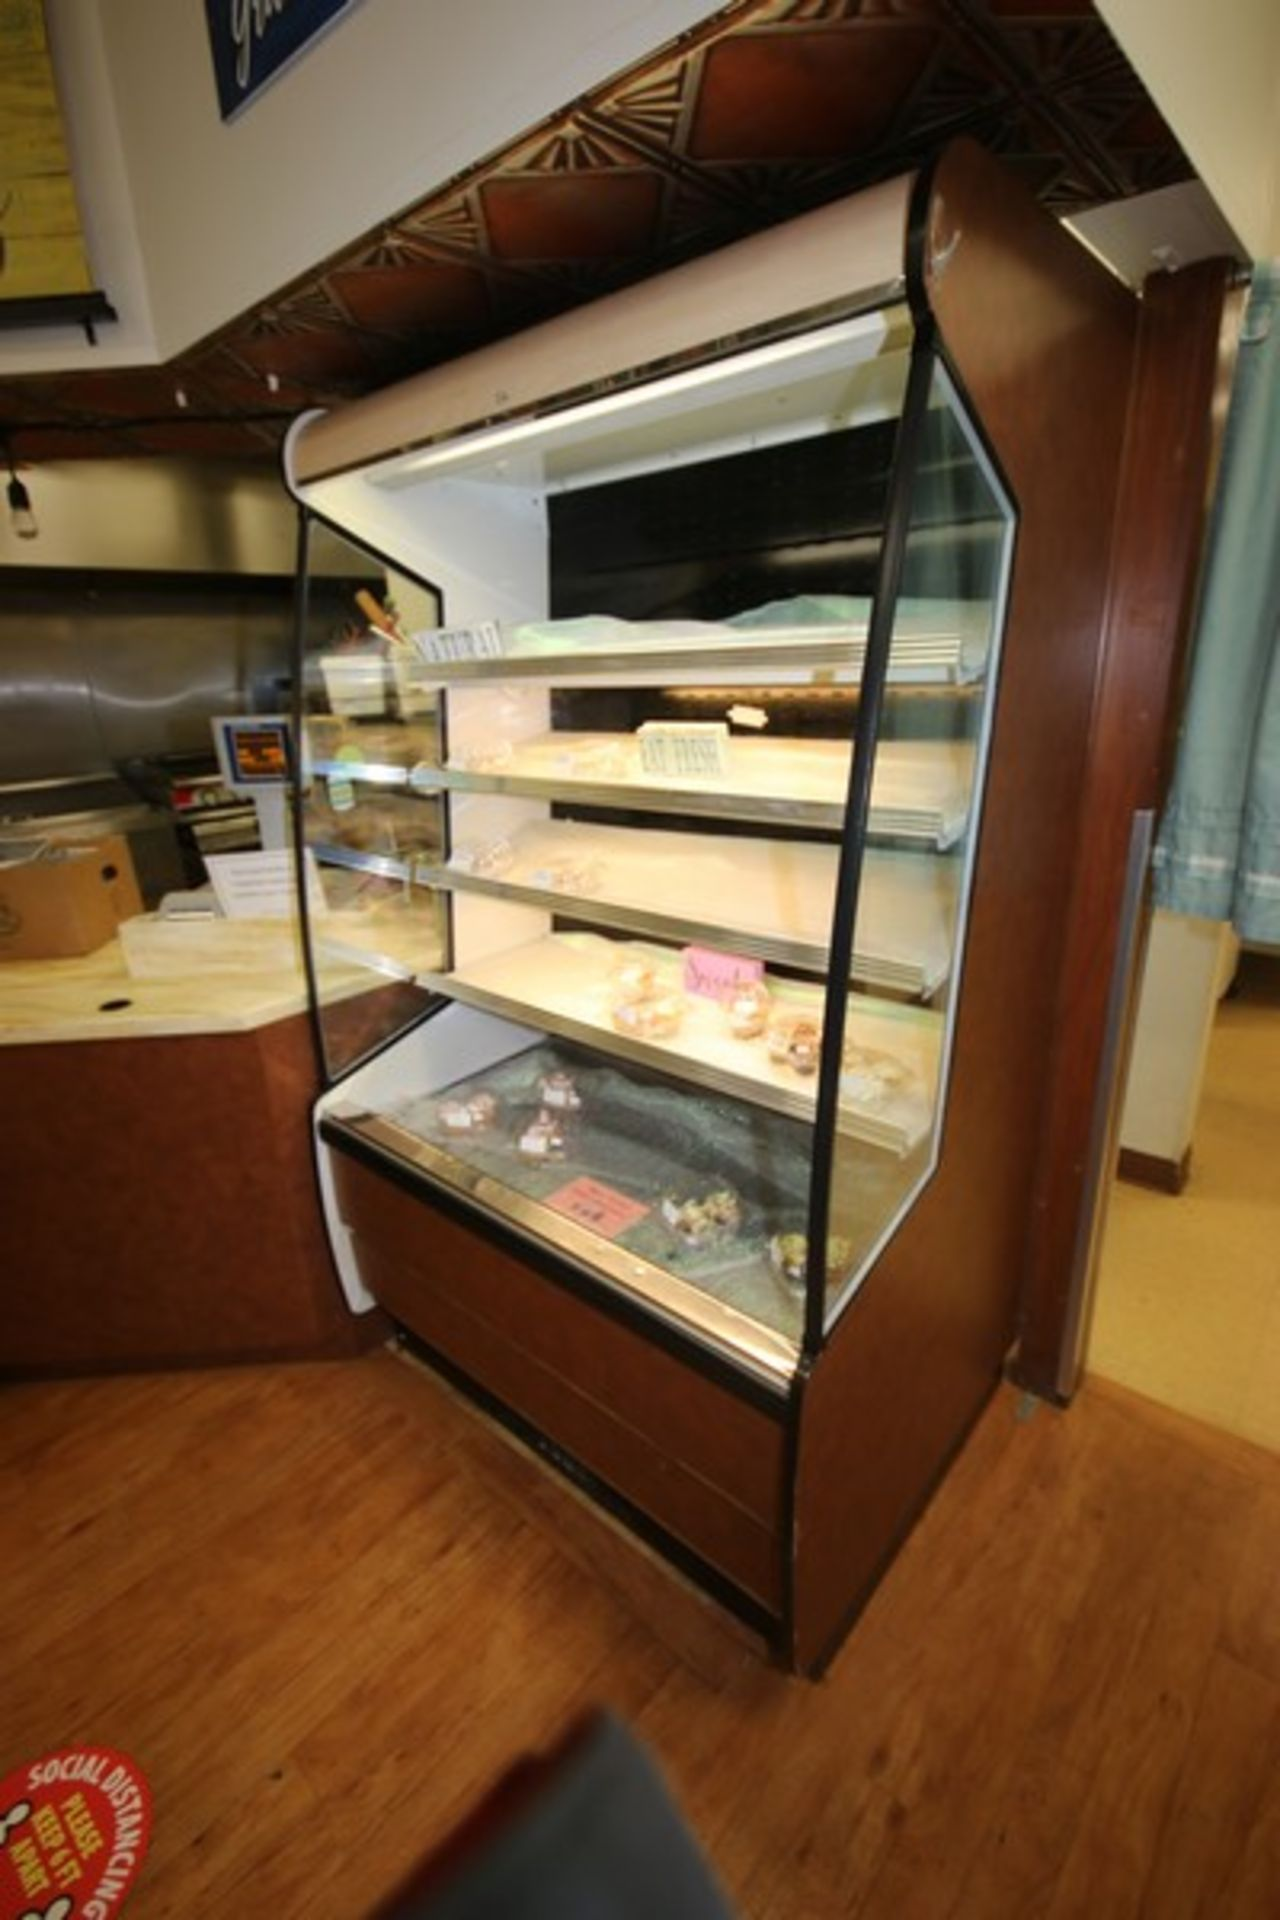 Federal Industries Open Refrigerated Display Case, M/N RSSM4788SC, with 4-Internal Shelves, - Image 2 of 3